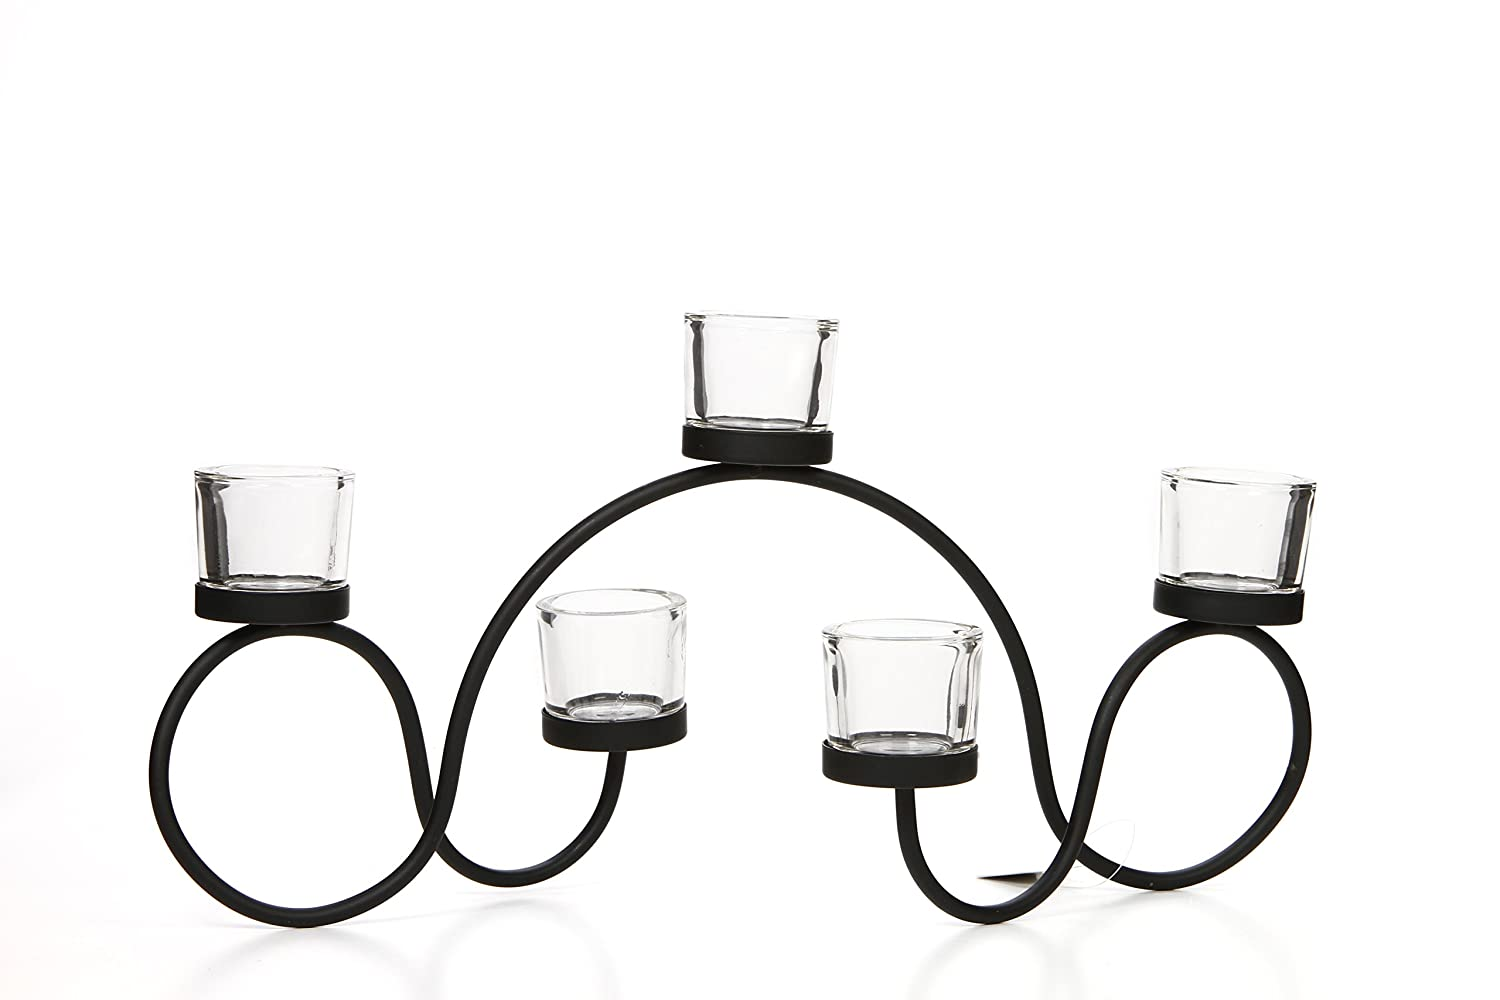 Hosley's 19 Long Tealight Candle holder. Hand Made By Artisans. Includes FREE Tea Lights. Ideal for Fireplace, Home, Spa, Wedding Gift. Modern Art. Bulk Buy HG GLOBAL FBA-G58700ON-1-EA